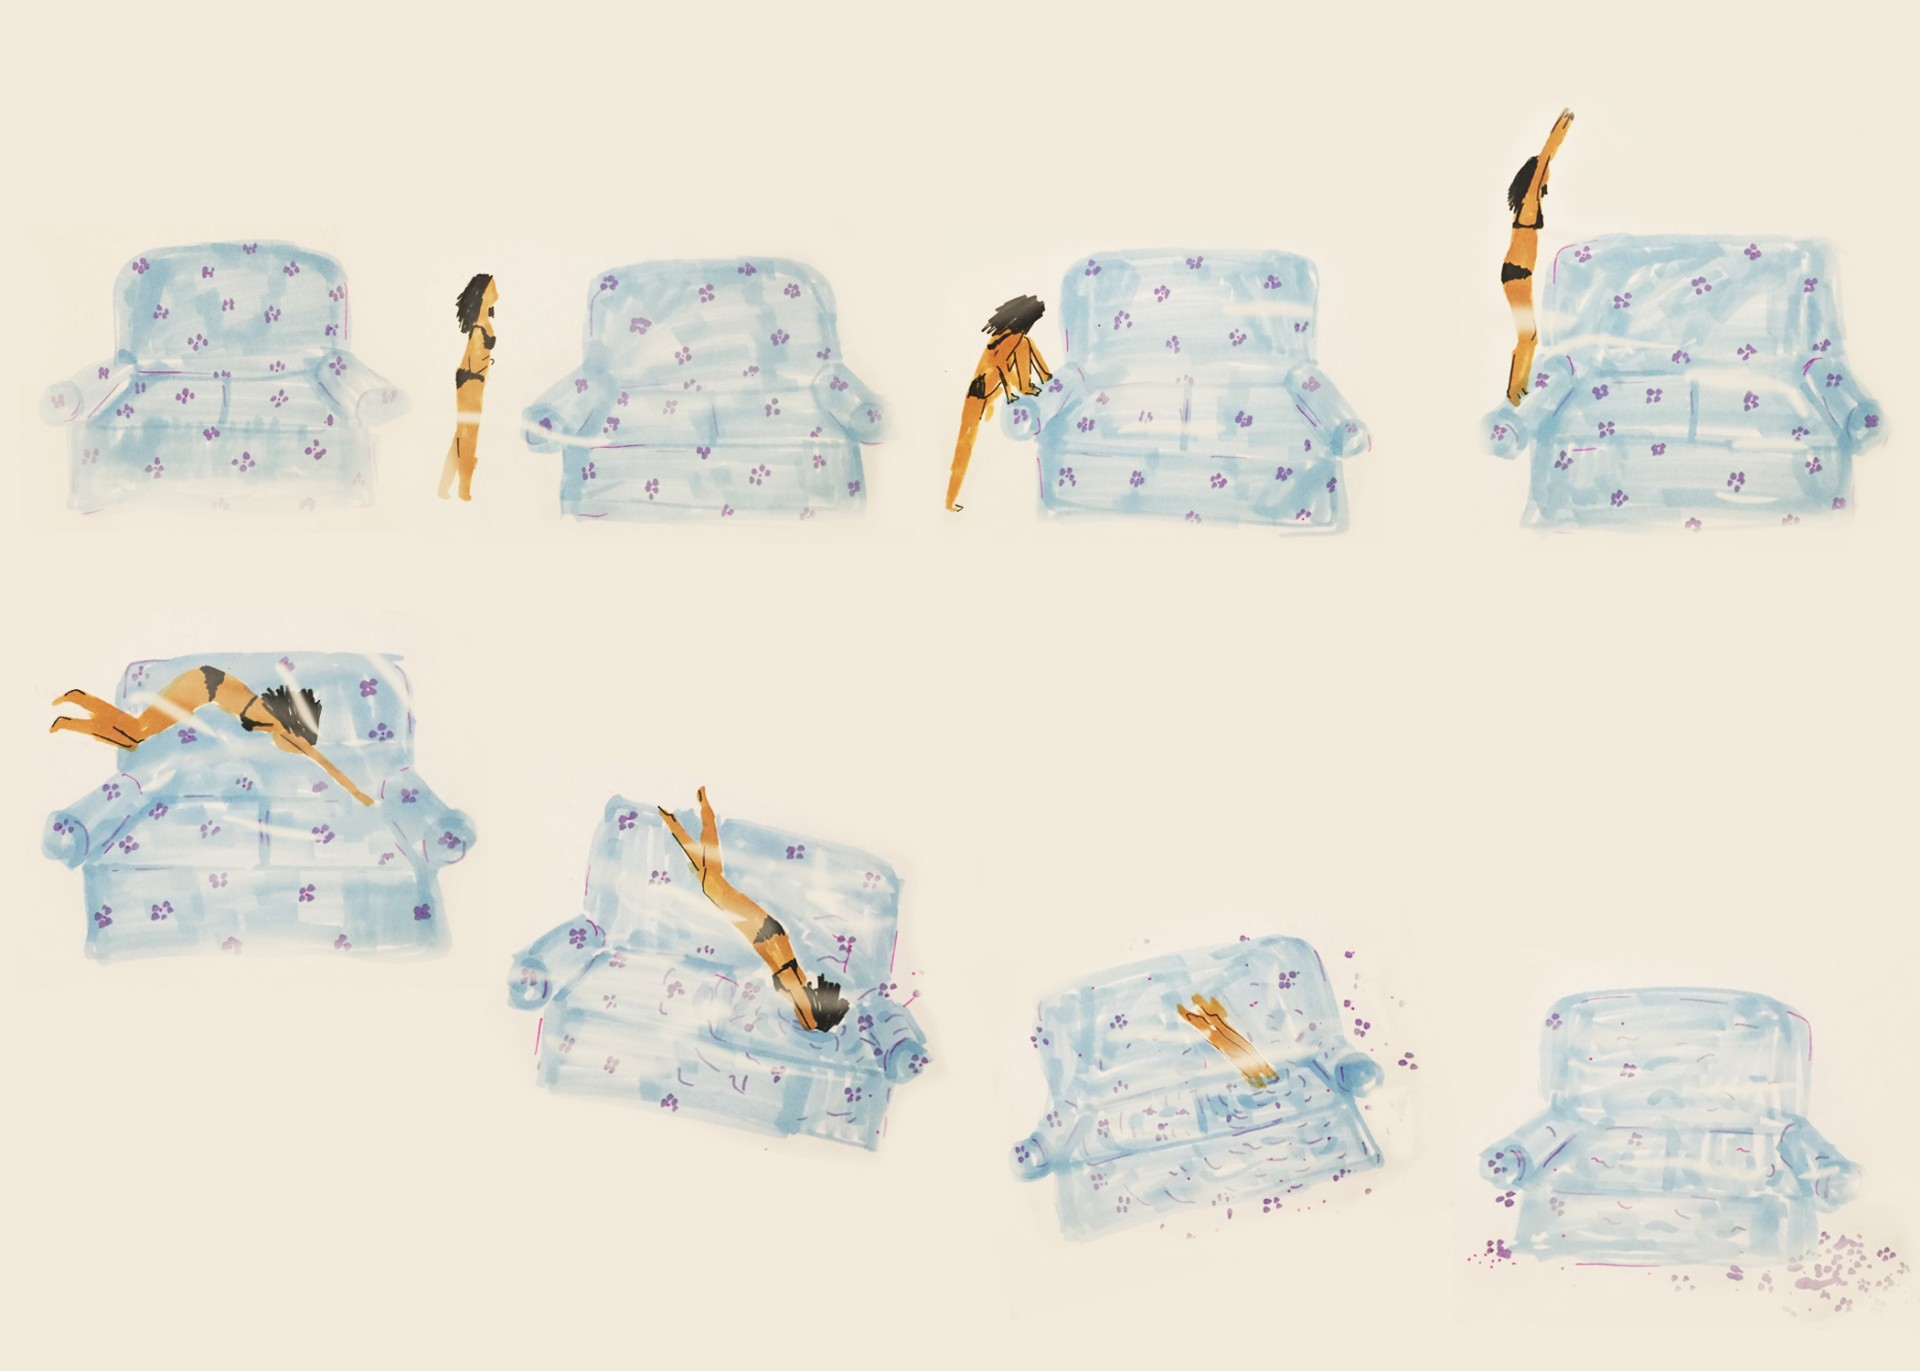 A series of images that illustrate a girl standing on the side of her blue couch and diving/disapearing into it. After she dives, the floral pattern of couch is scattered on the ground. Tan background.